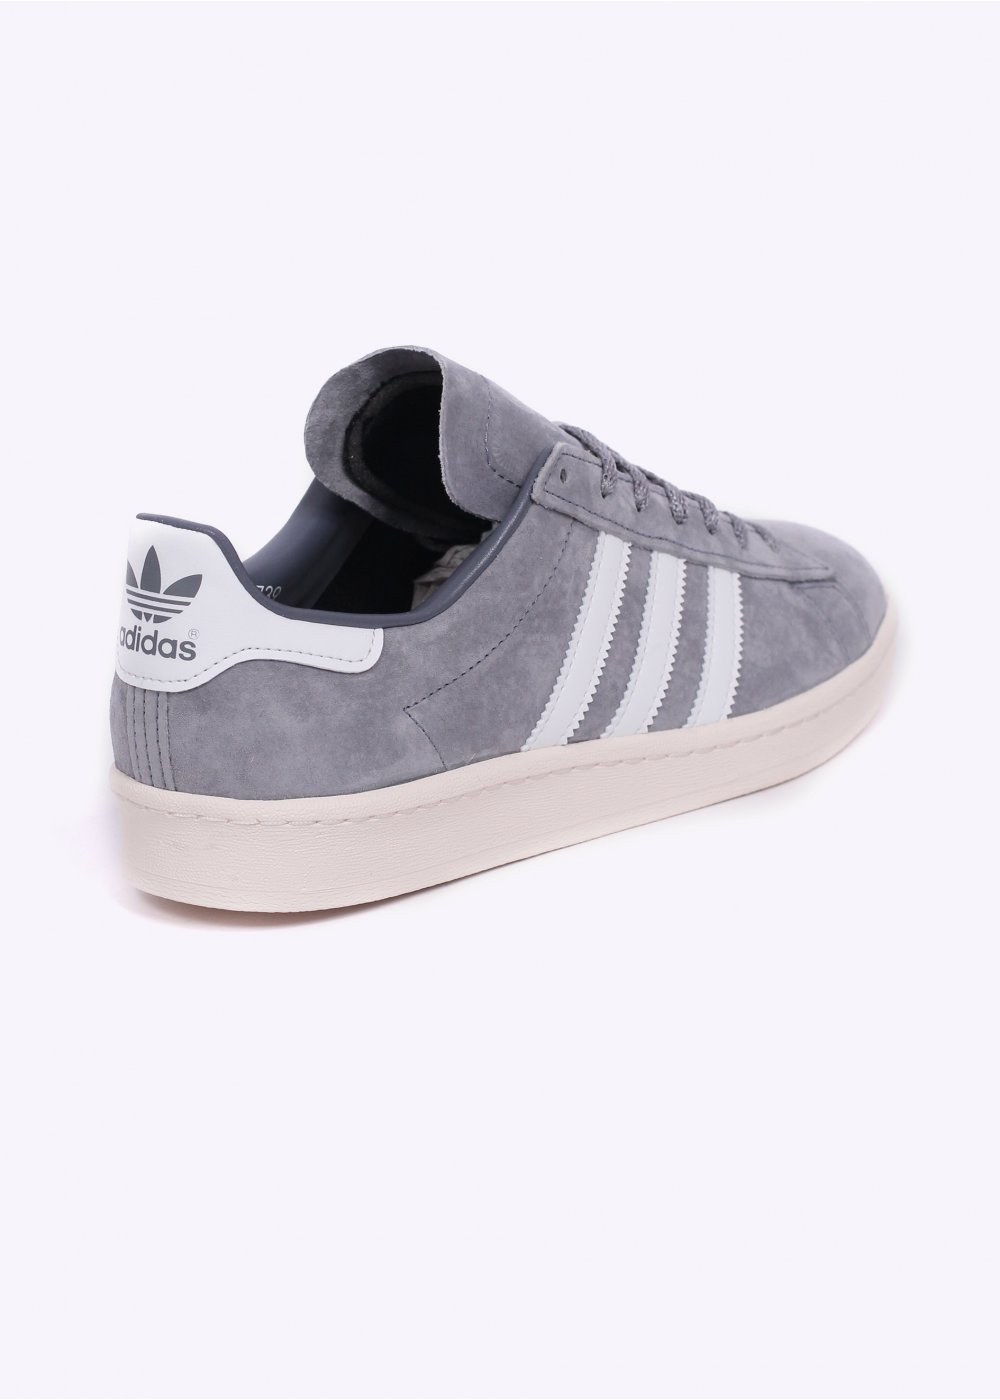 adidas originals footwear